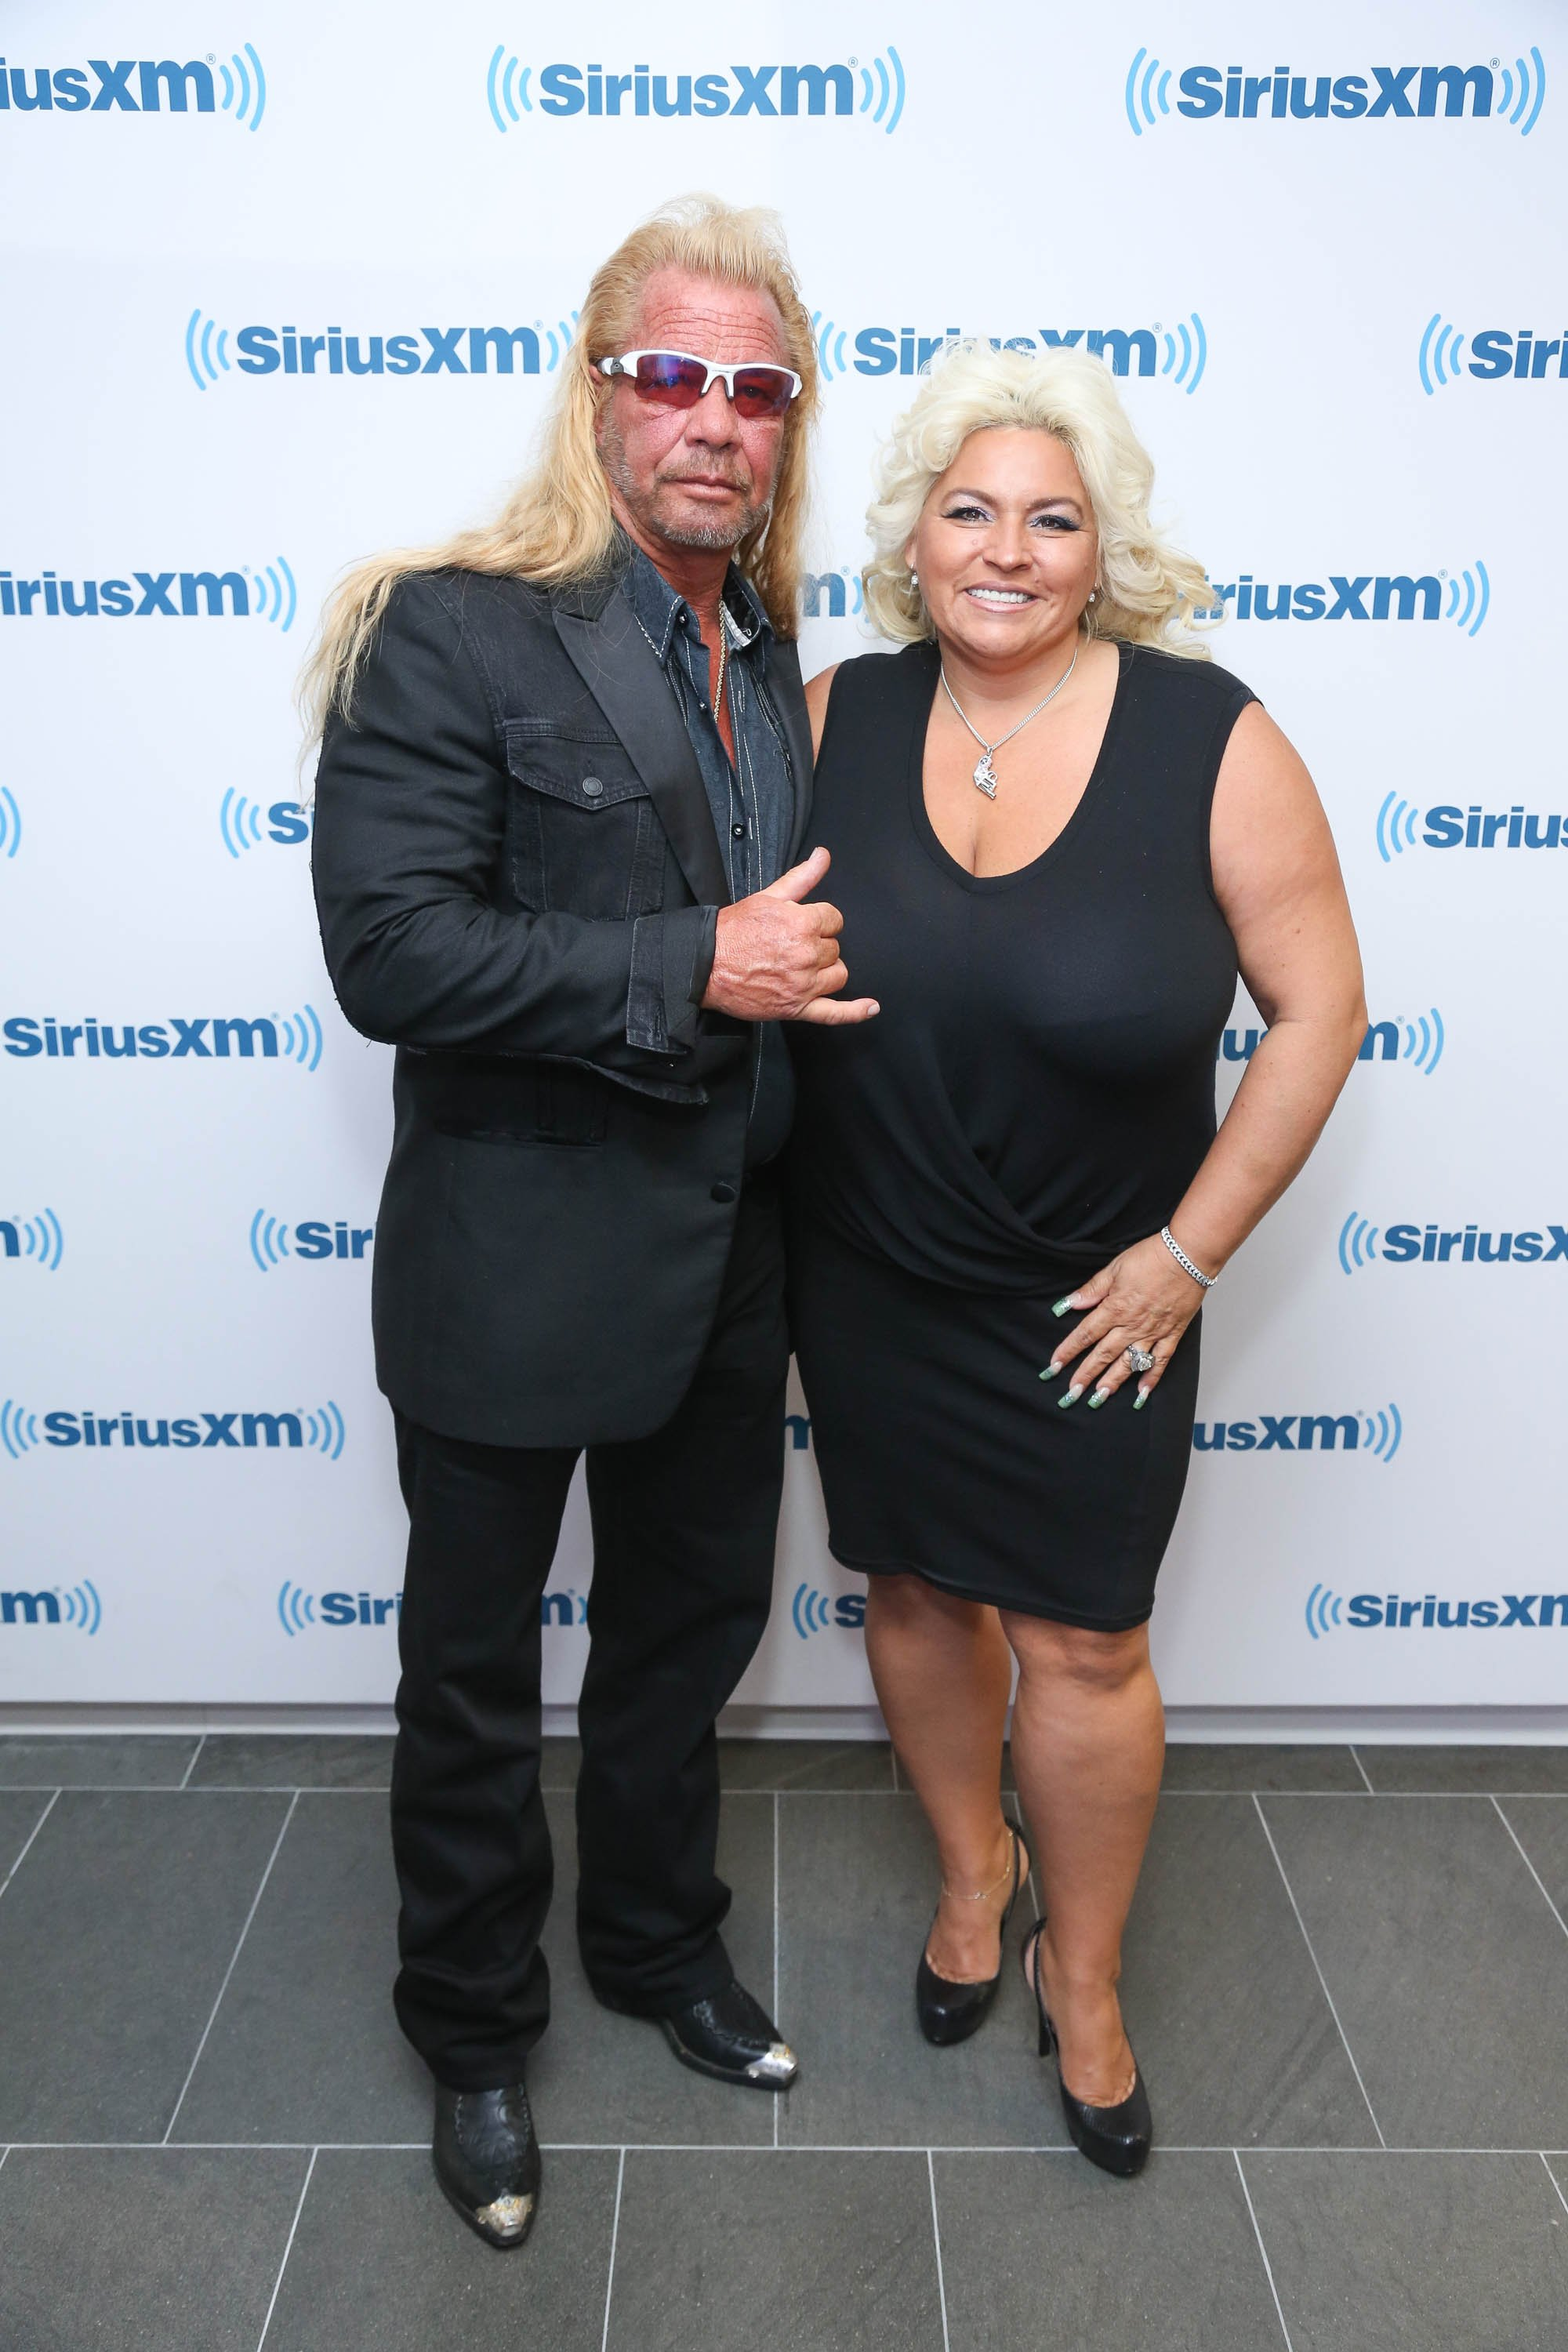 Duane and Beth Chapman visit the SiriusXM Studios in New York City on June 9, 2014 | Photo: Getty Images